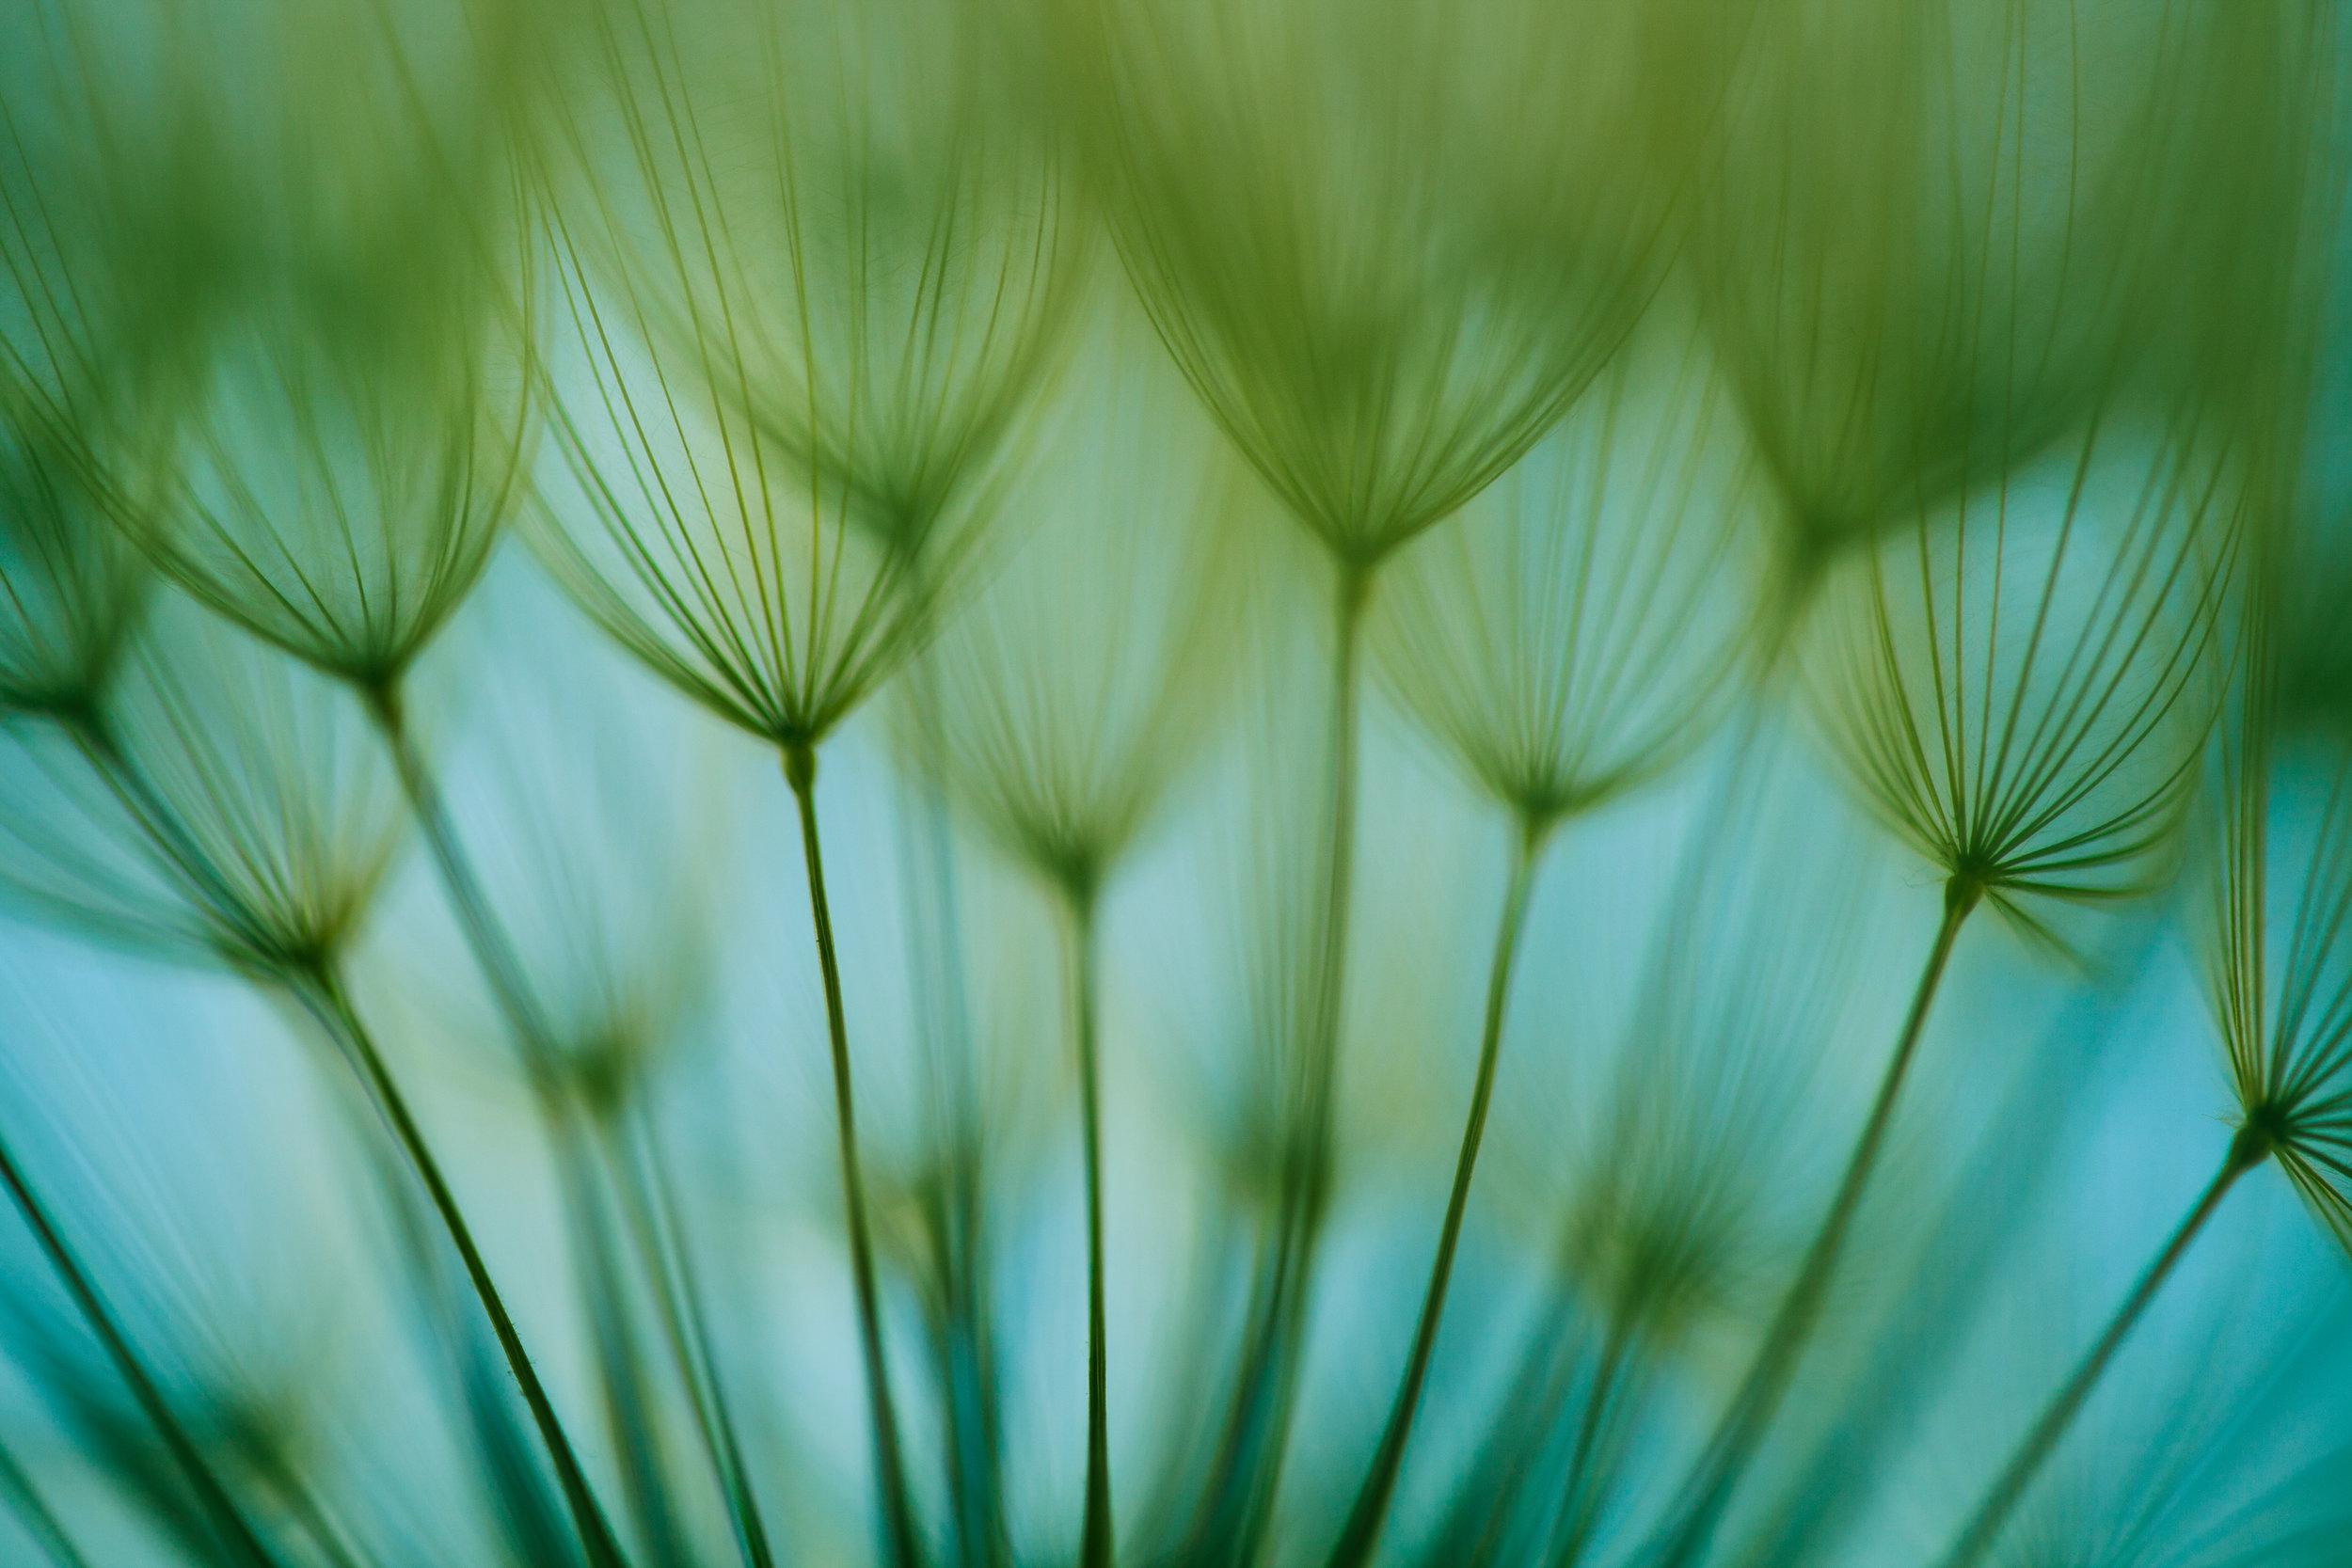 Dandelion close up.jpg